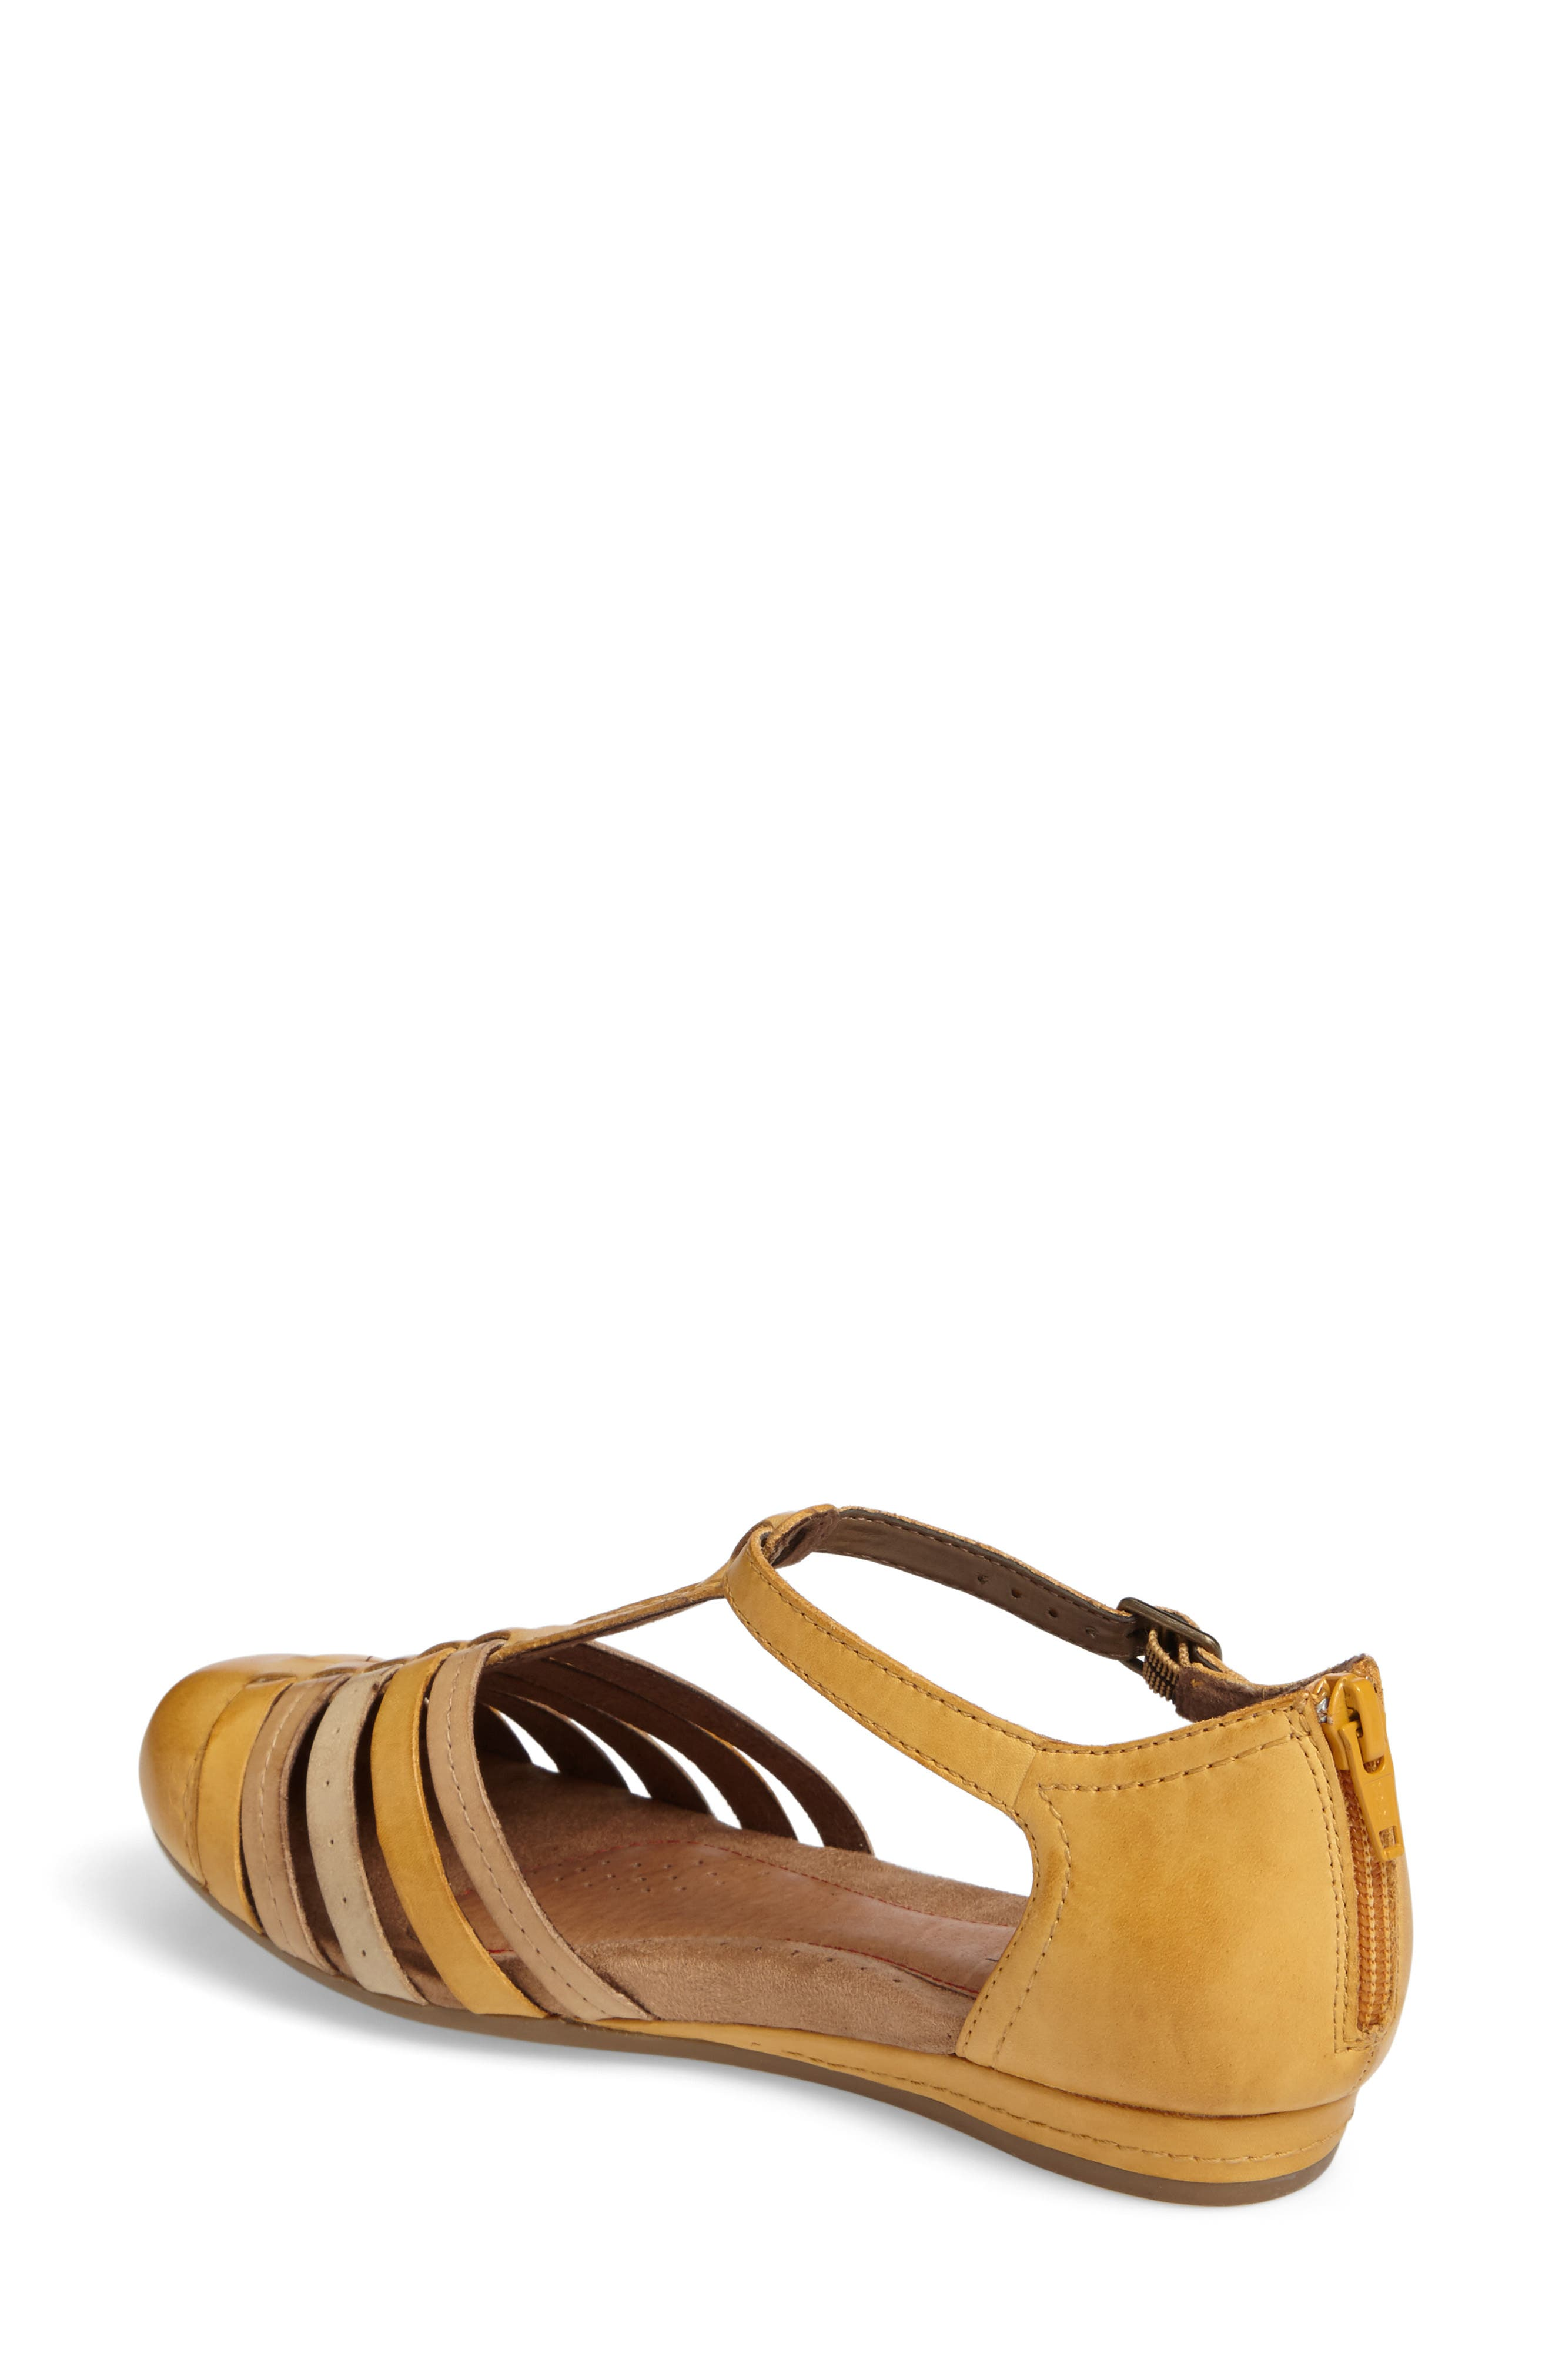 Galway T-Strap Sandal,                             Alternate thumbnail 10, color,